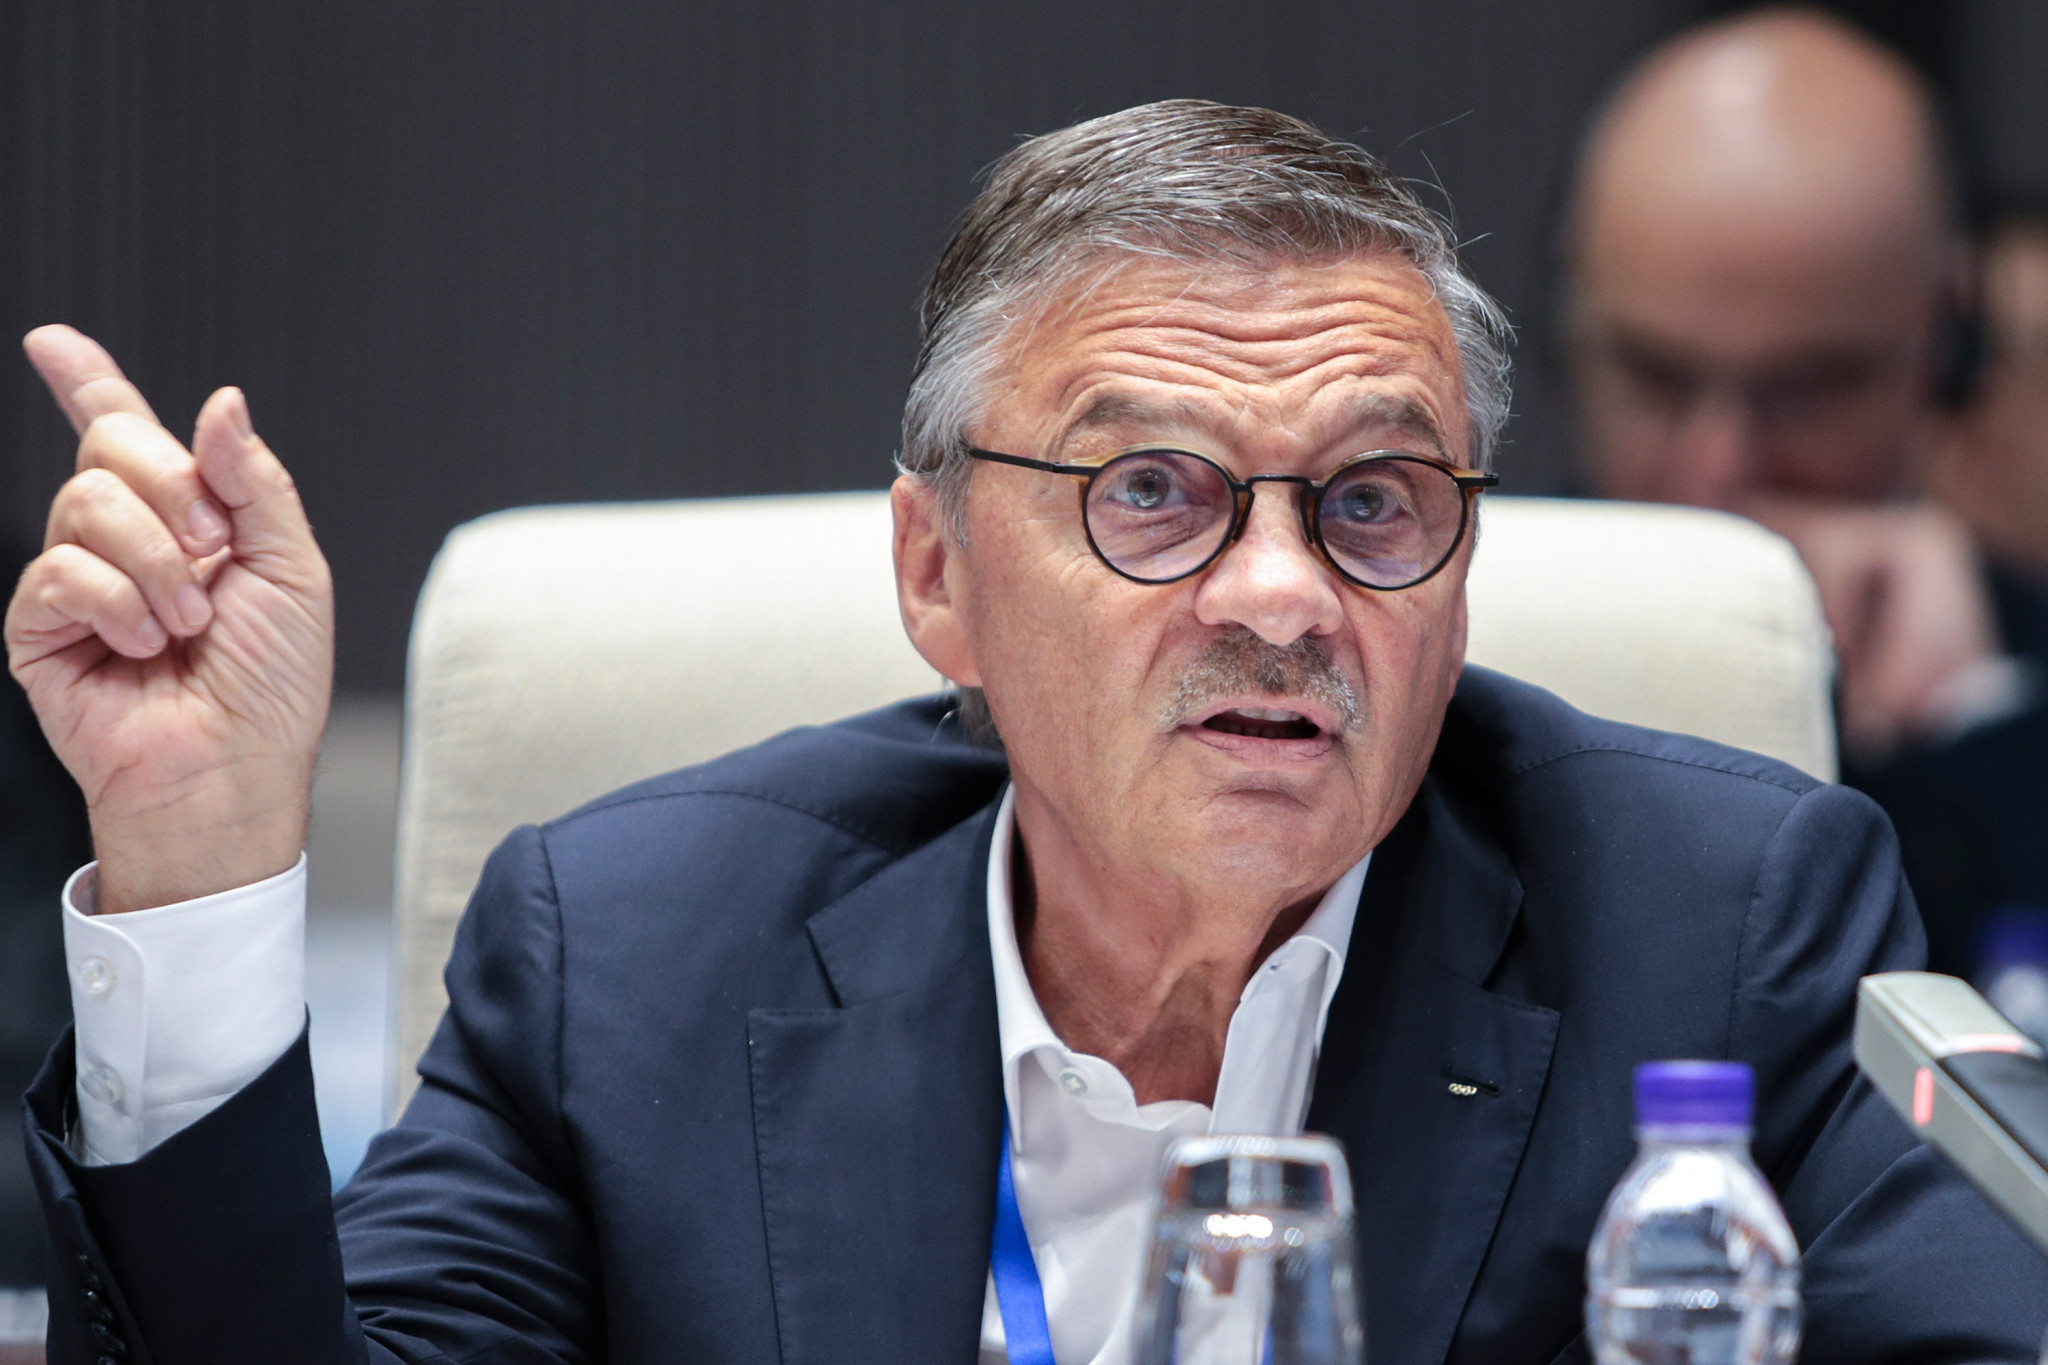 IIHF President René Fasel said the IIHF was expecting a decision from the NHL in August ©Getty Images